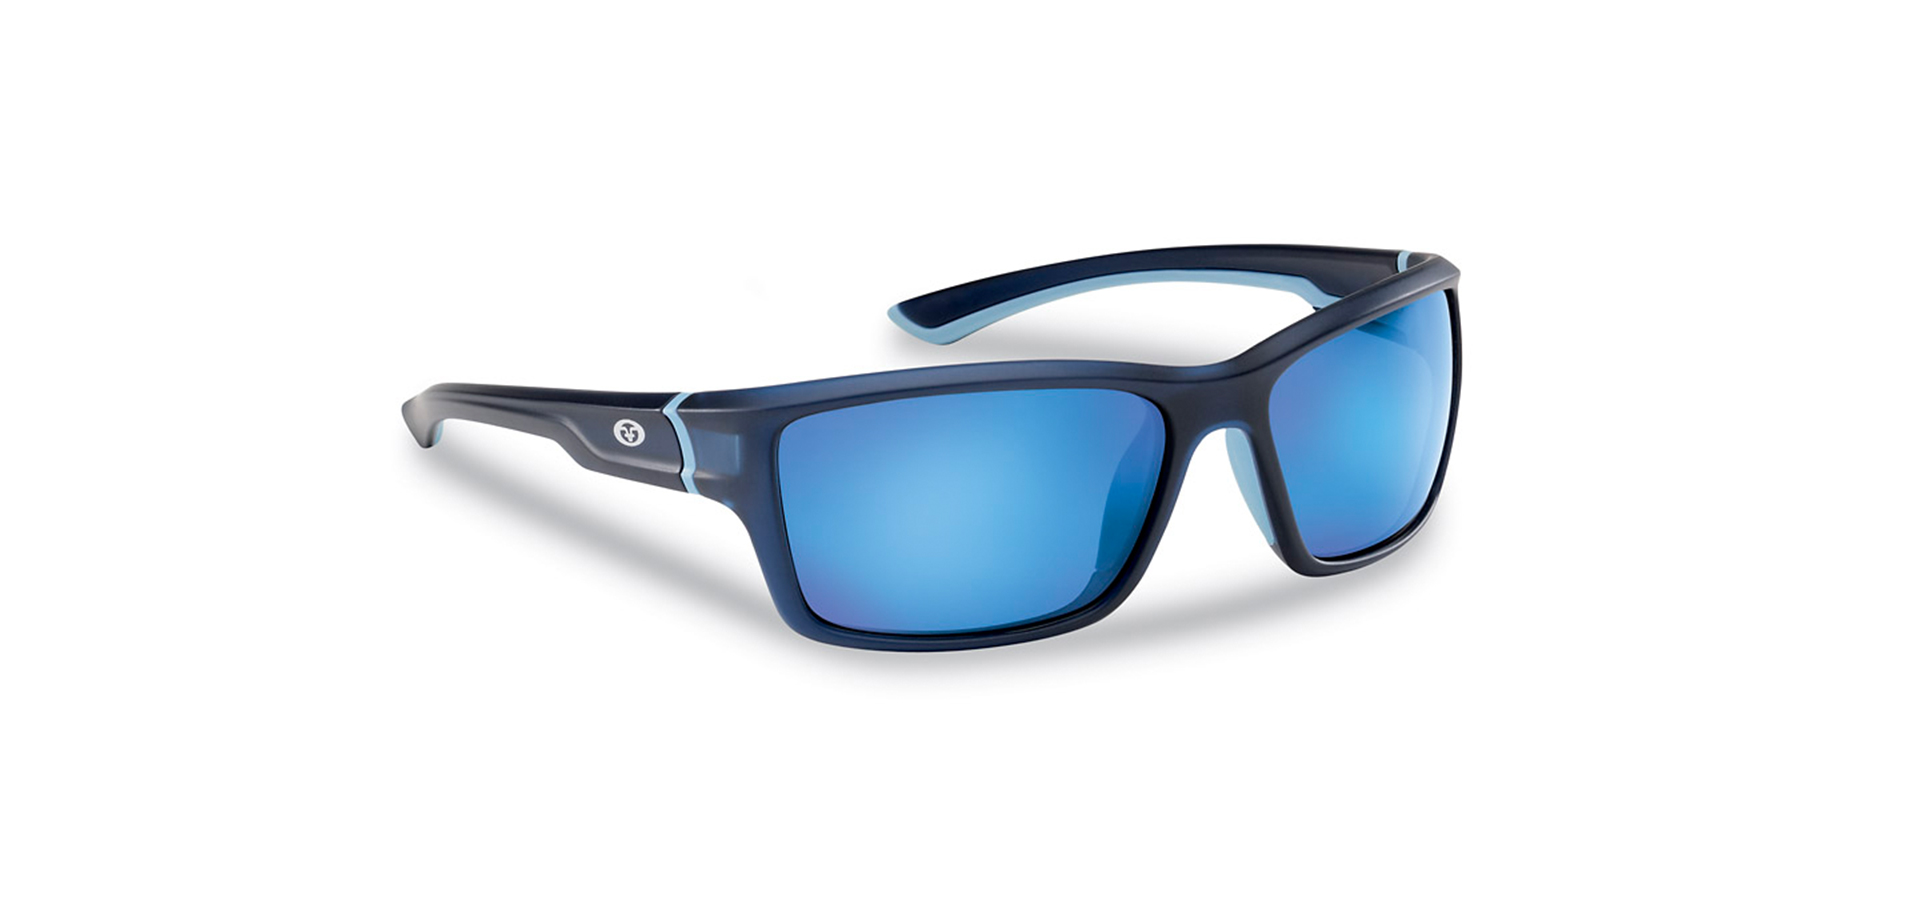 BALLISTIC PROOF SUNGLASSES